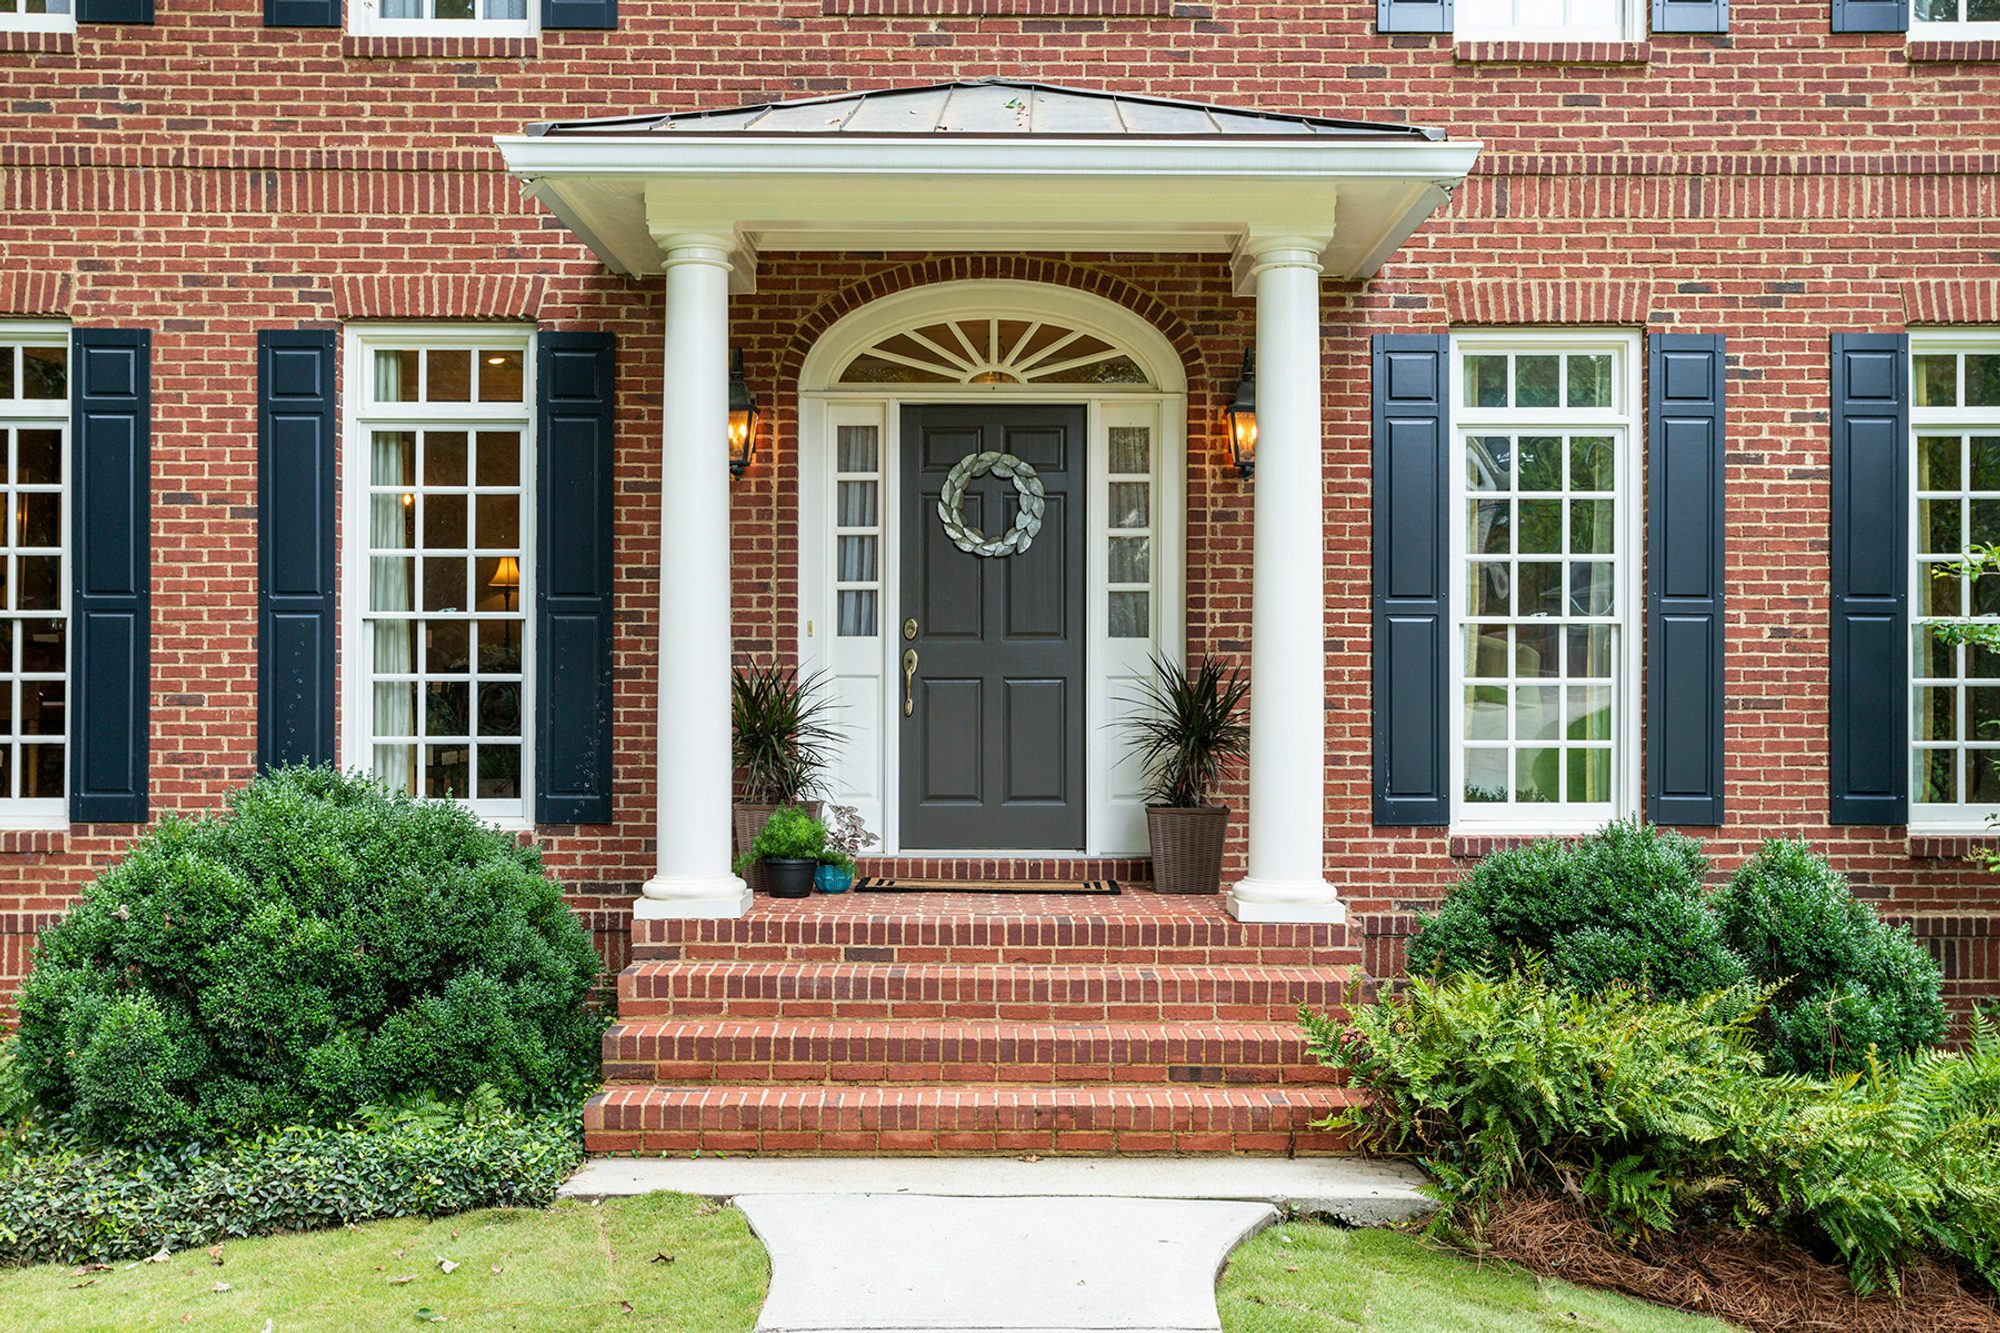 Red brick front porch with brick flooring and matching red brick walls.